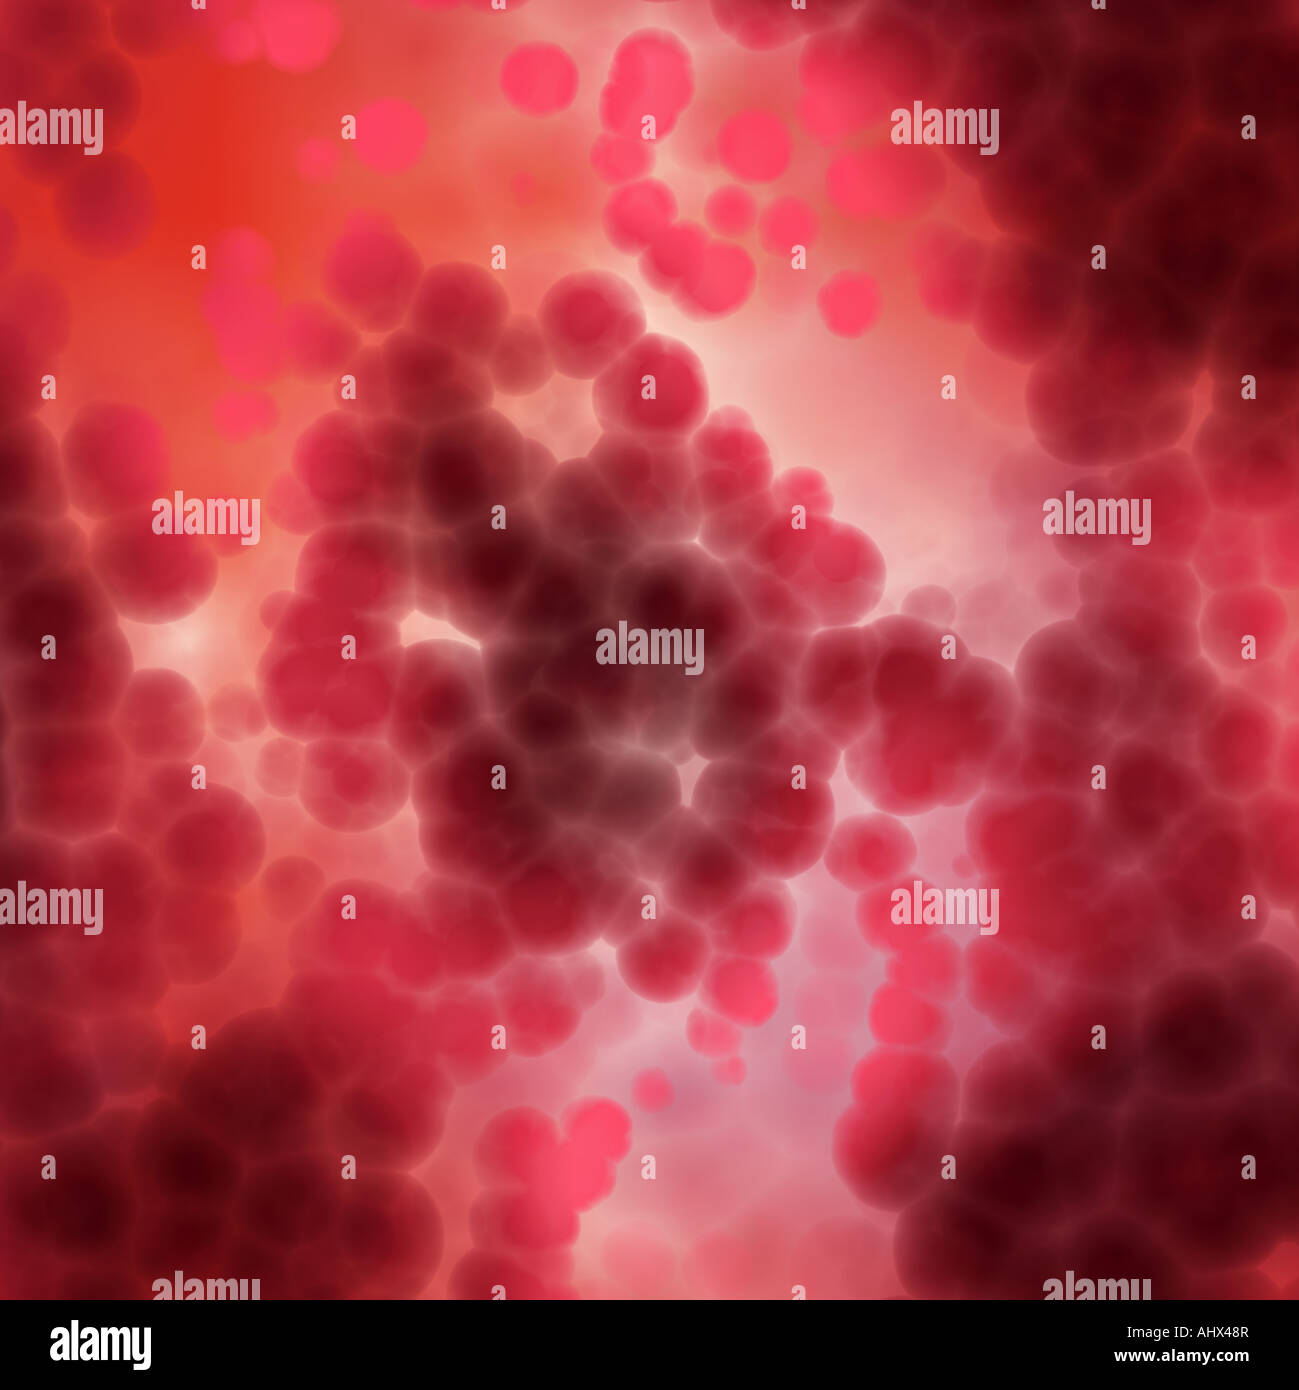 lots of dna and cells or a lava lamp - Stock Image